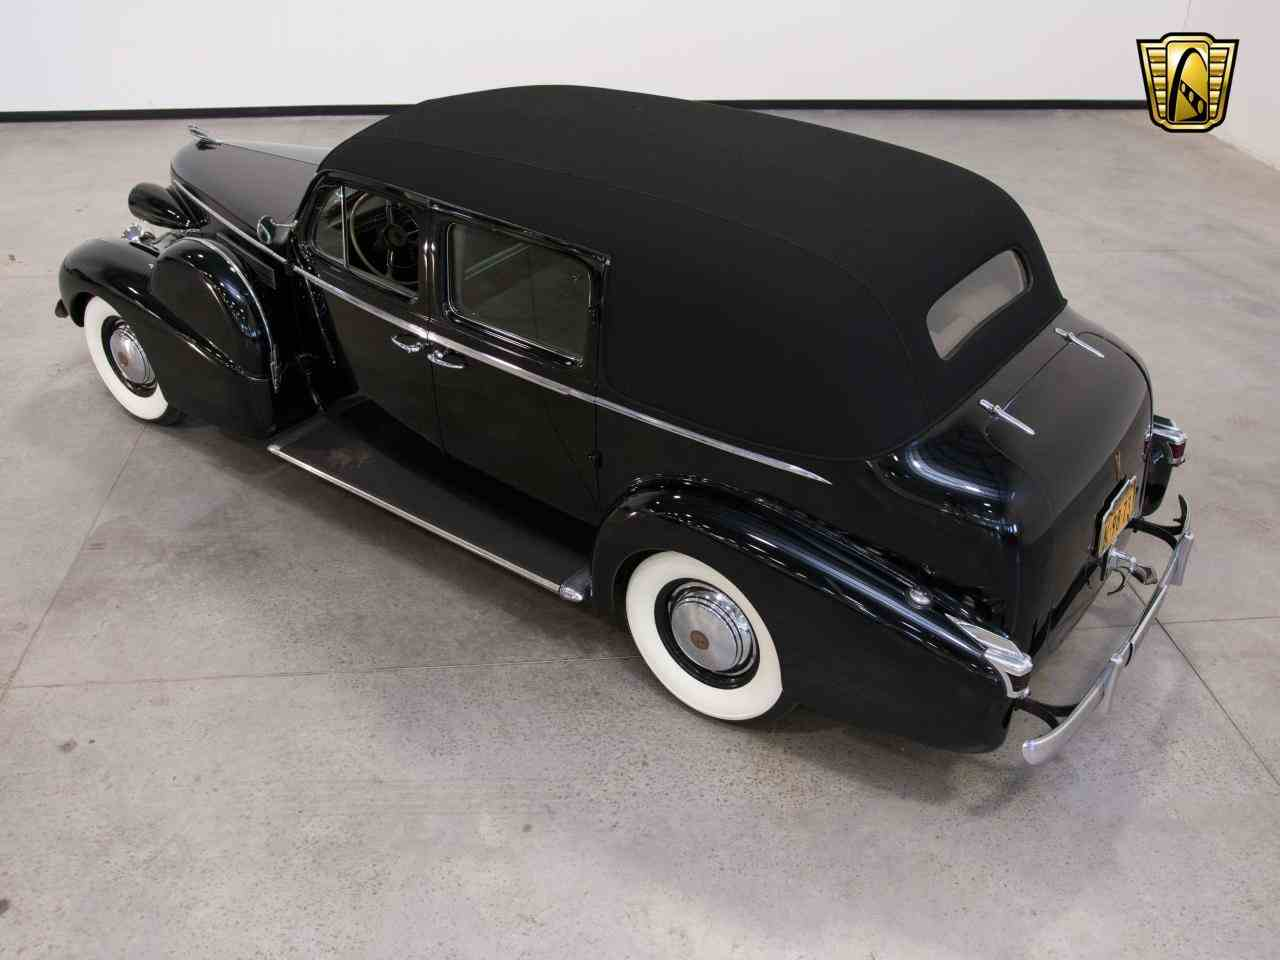 Large Picture of '39 7 Passenger Touring W/ Trunk - $58,000.00 - KHP0